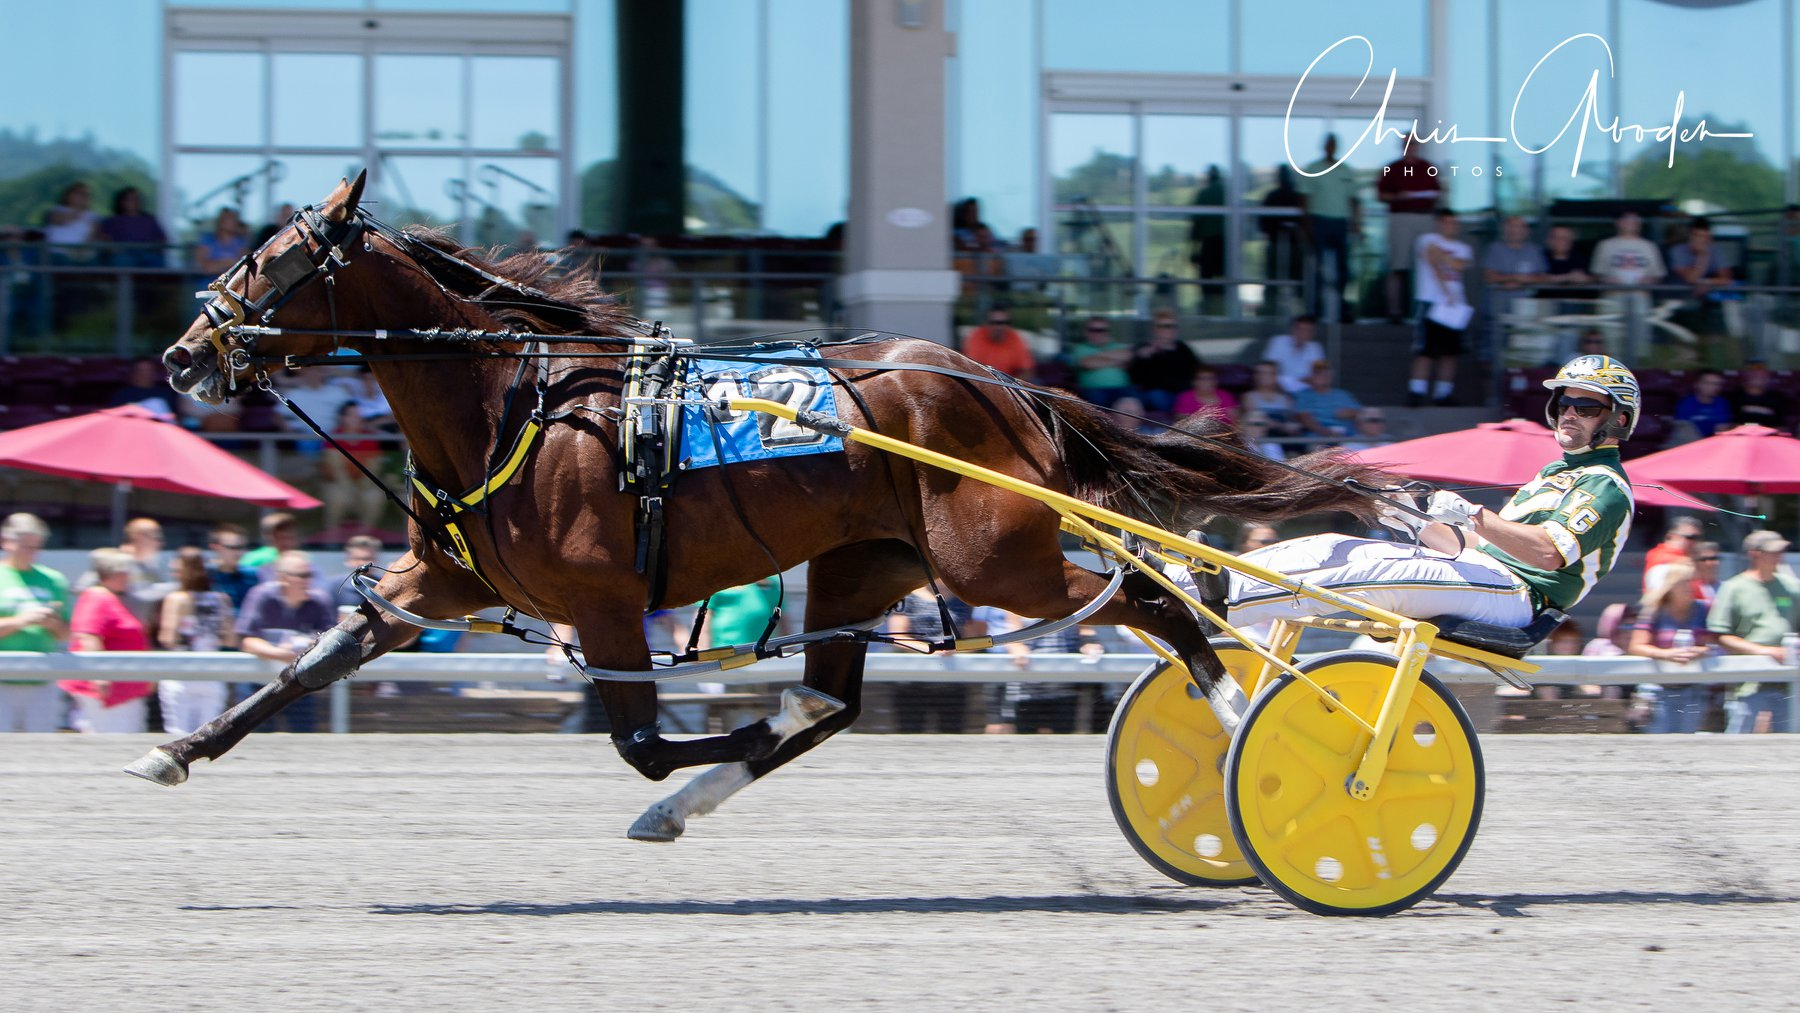 Warrawee Ubeaut (Sweet Lou, filly) winning at The Meadows in 1:52.4. Photo by Chris Gooden